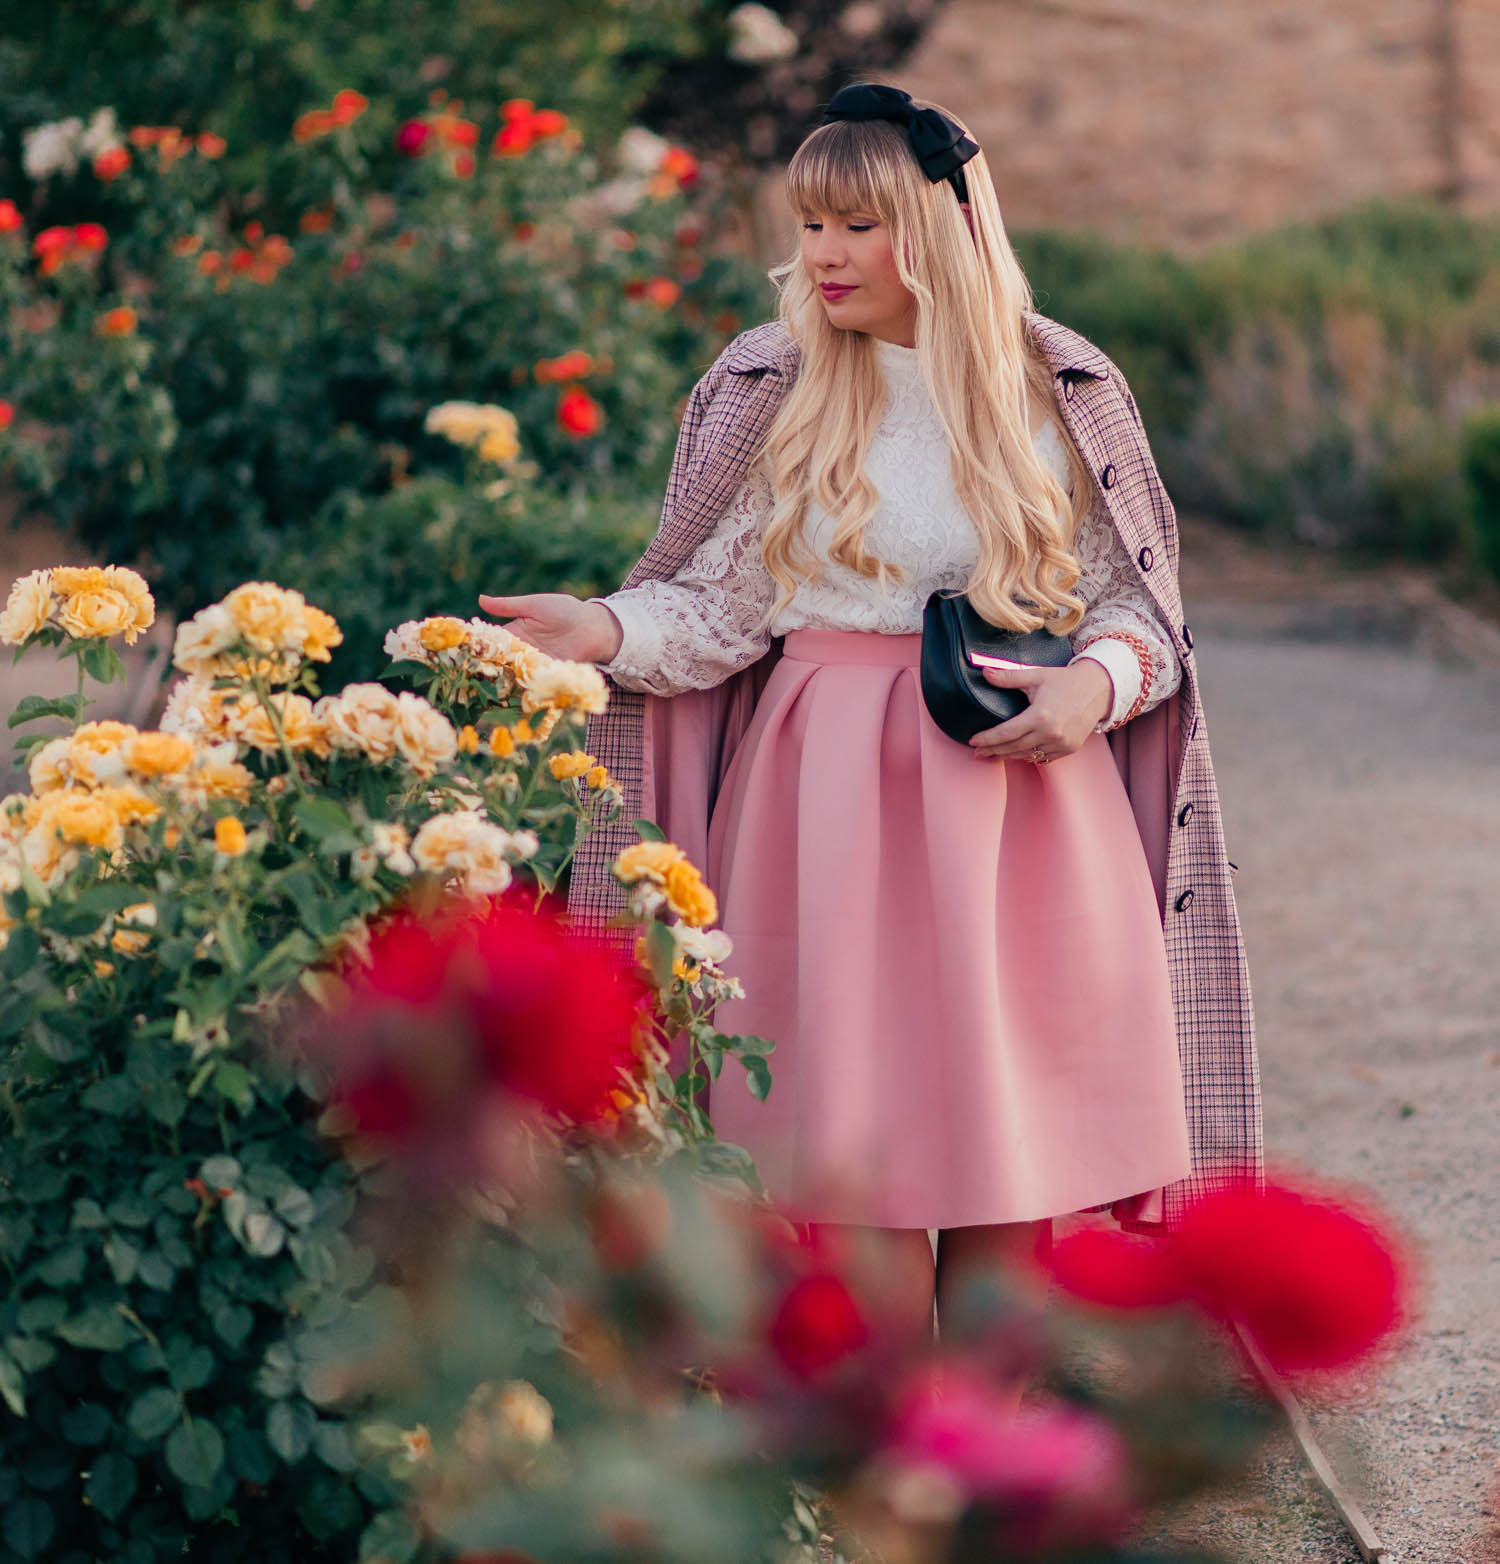 Elizabeth Hugen of Lizzie in Lace shares a pink feminine outfit idea